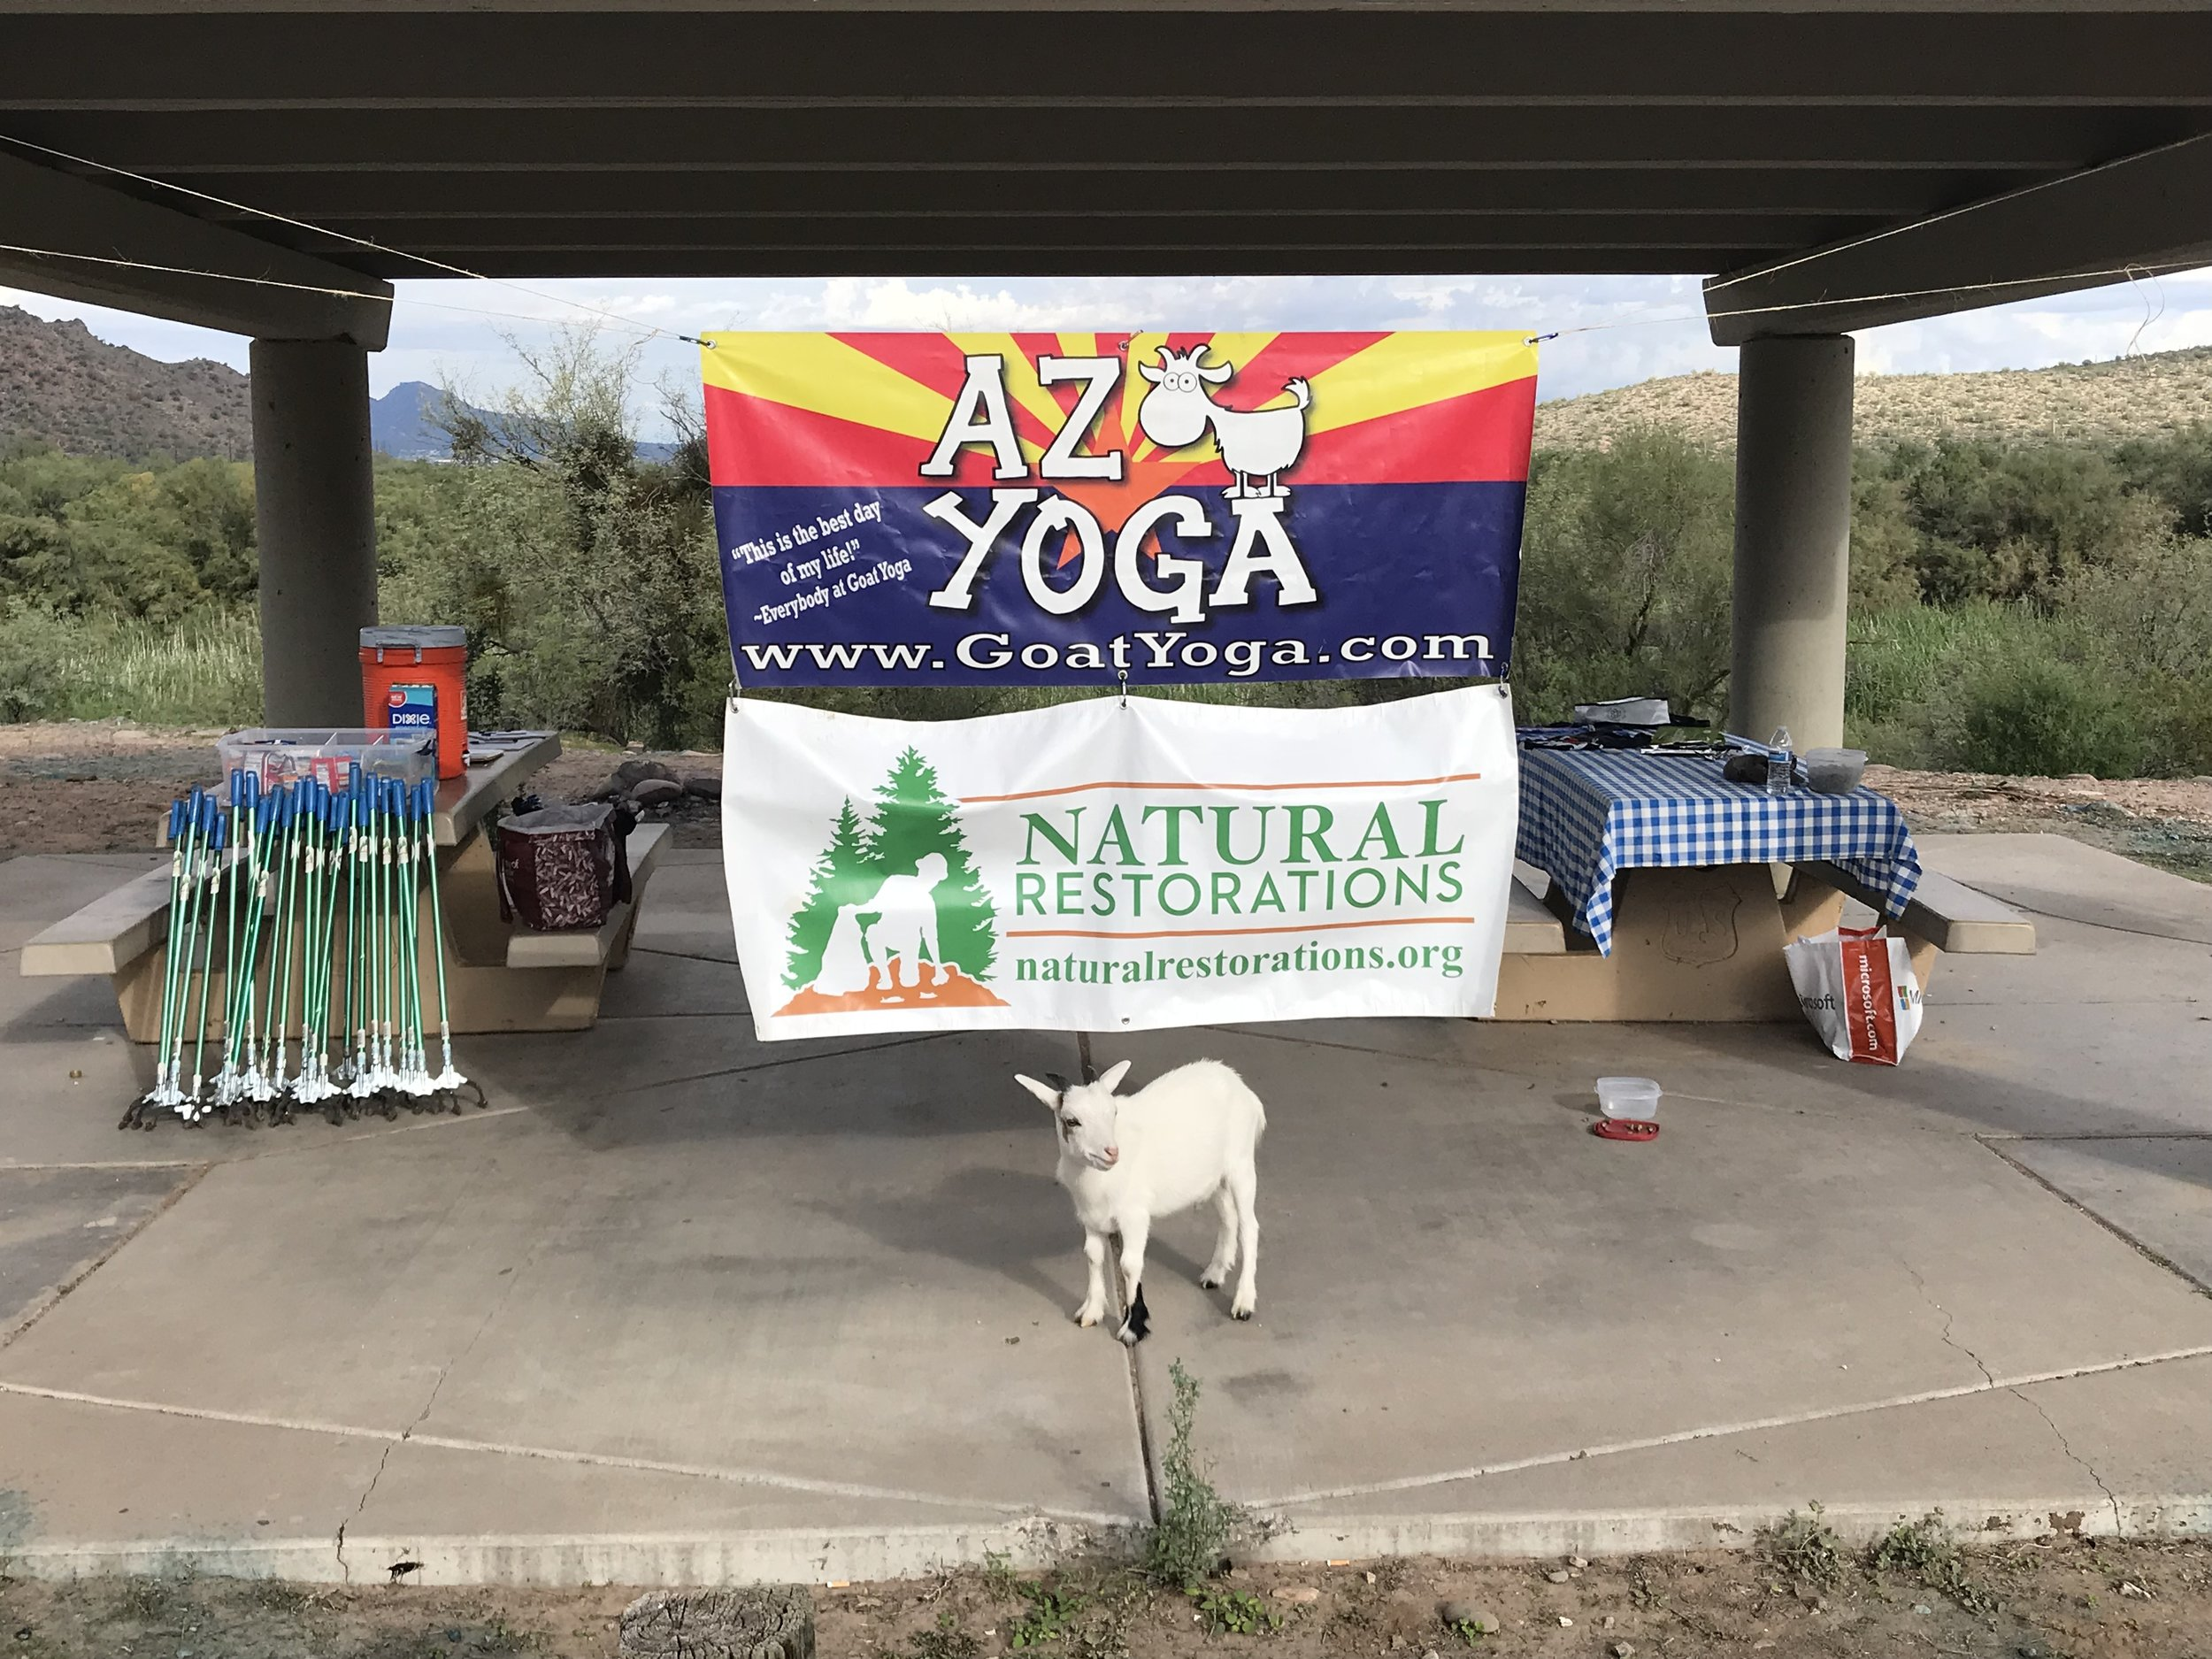 10/23/18 - Lower Salt River Plogging Cleanup AZ Goat Yoga and Visit Mesa.Click HERE to view the project.